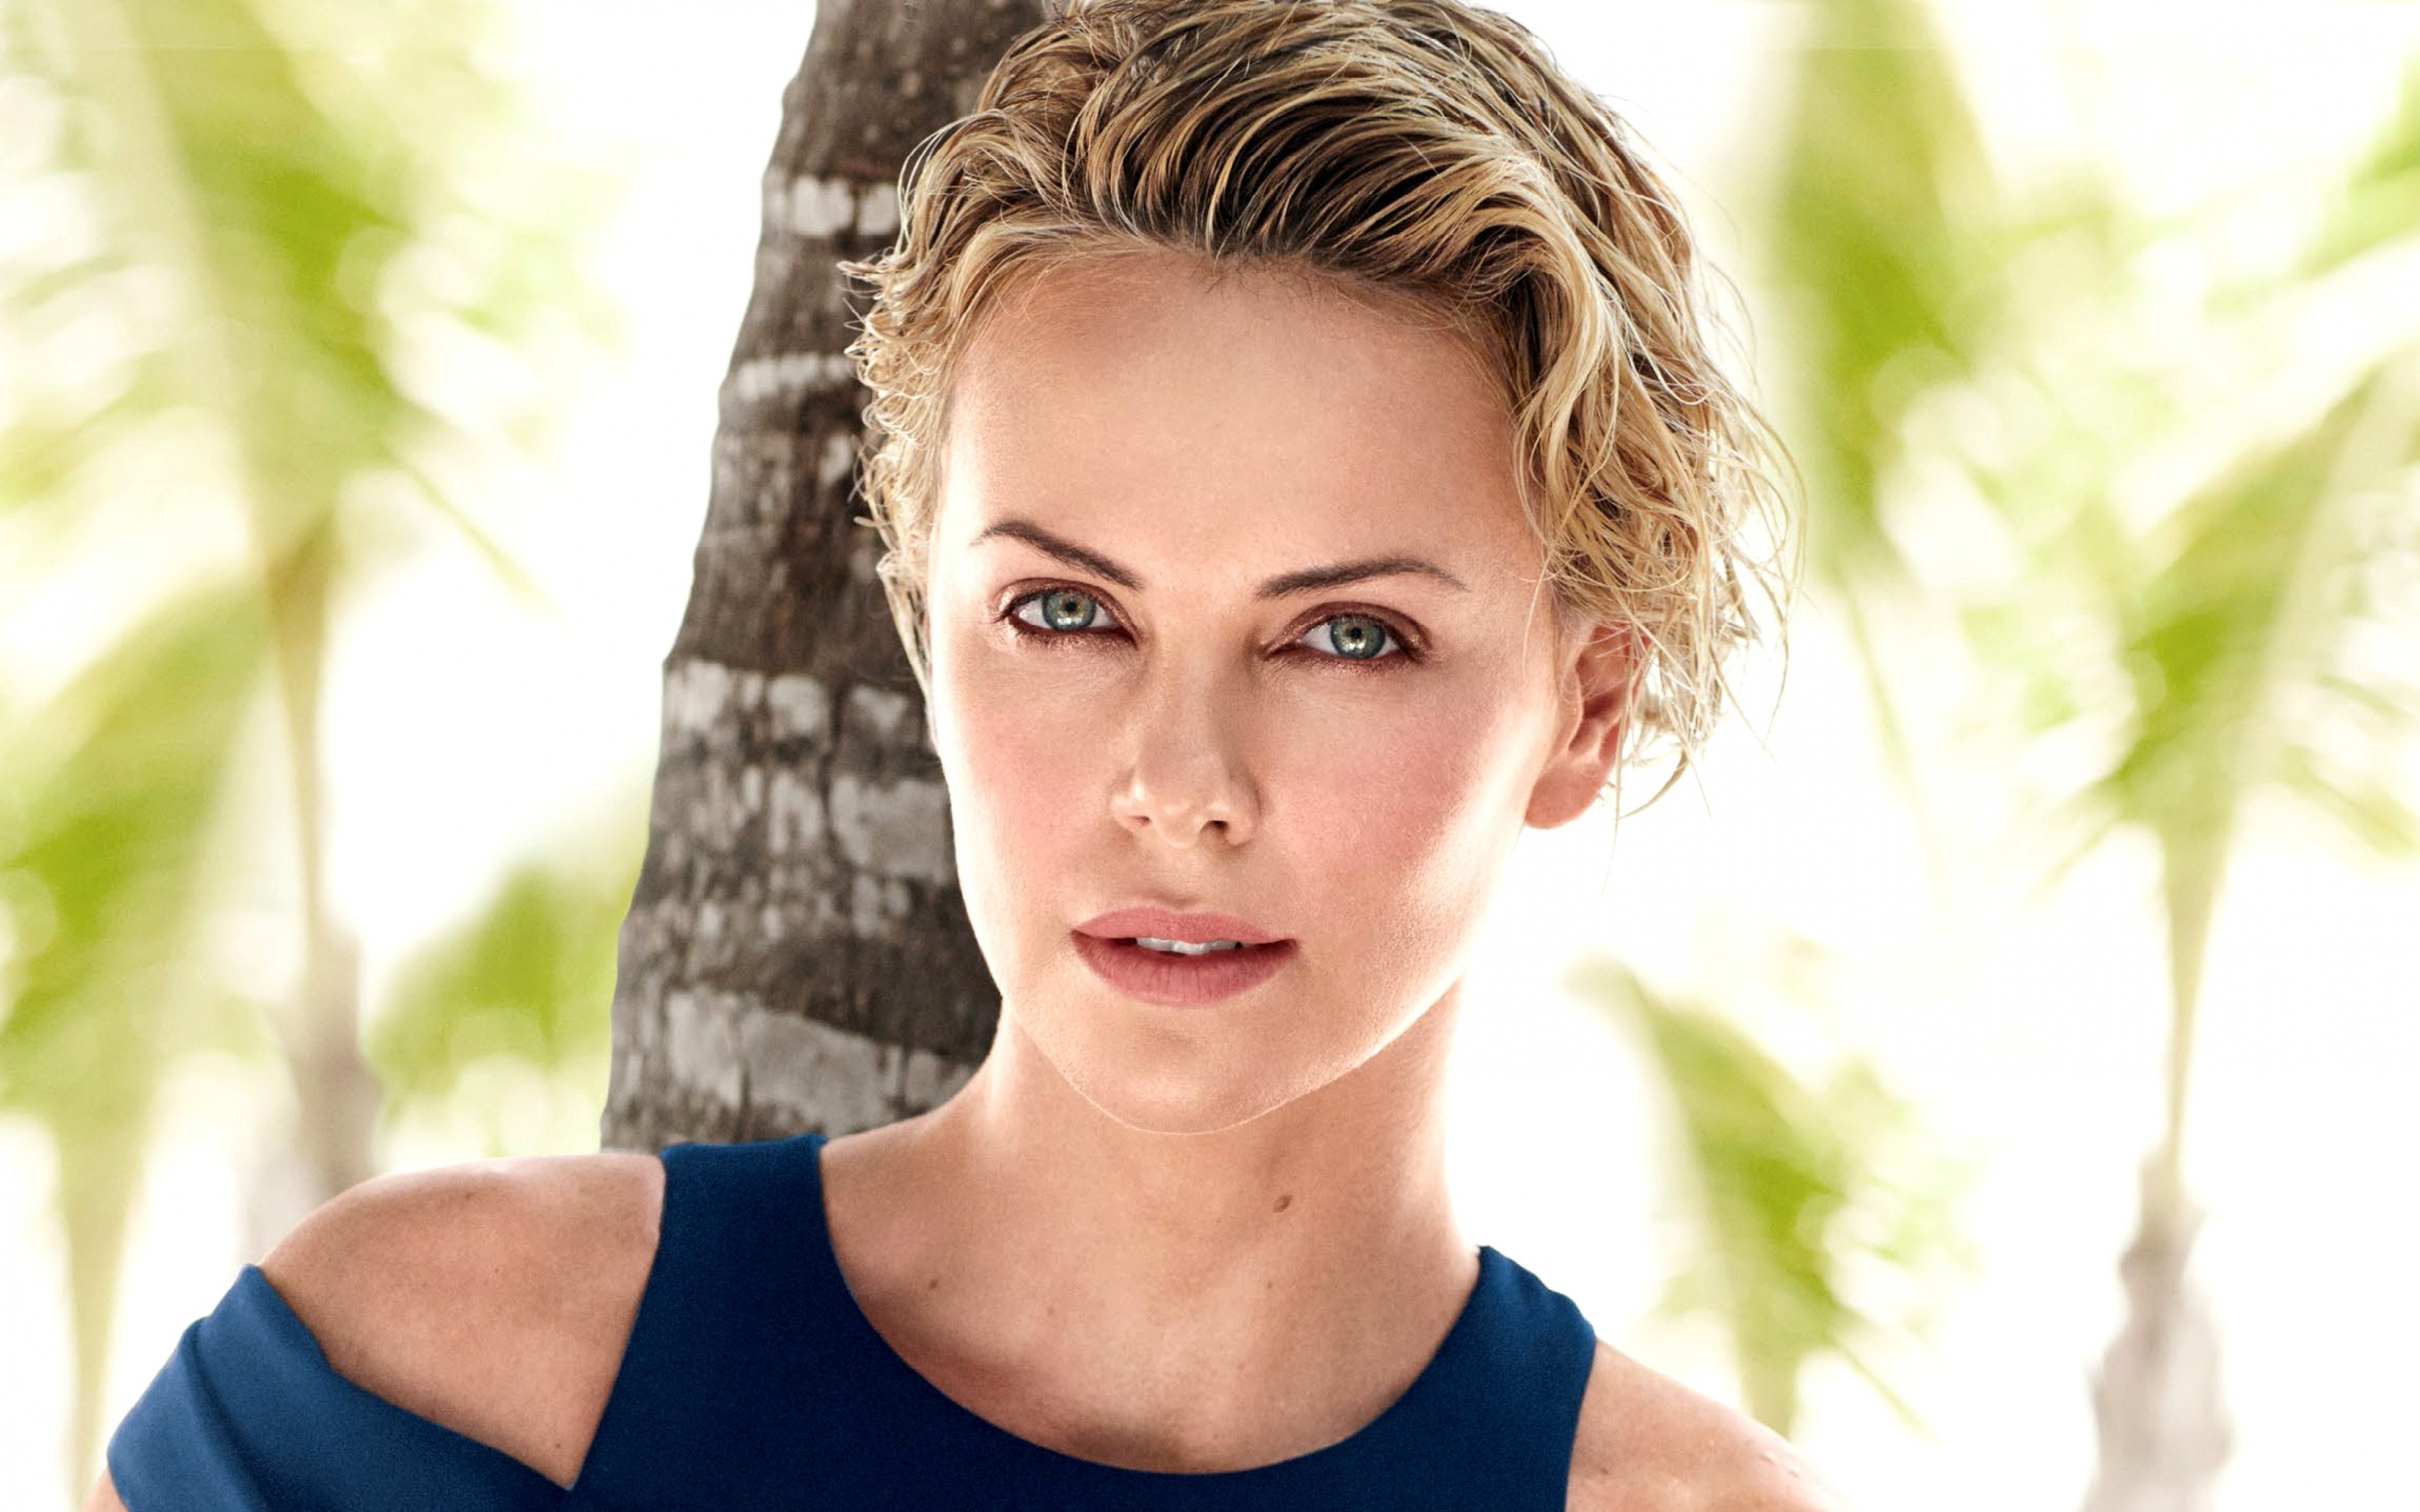 Charlize Theron Wallpaper Iphone Charlize Theron 4k Wallpapers Hd Wallpapers Id 22808